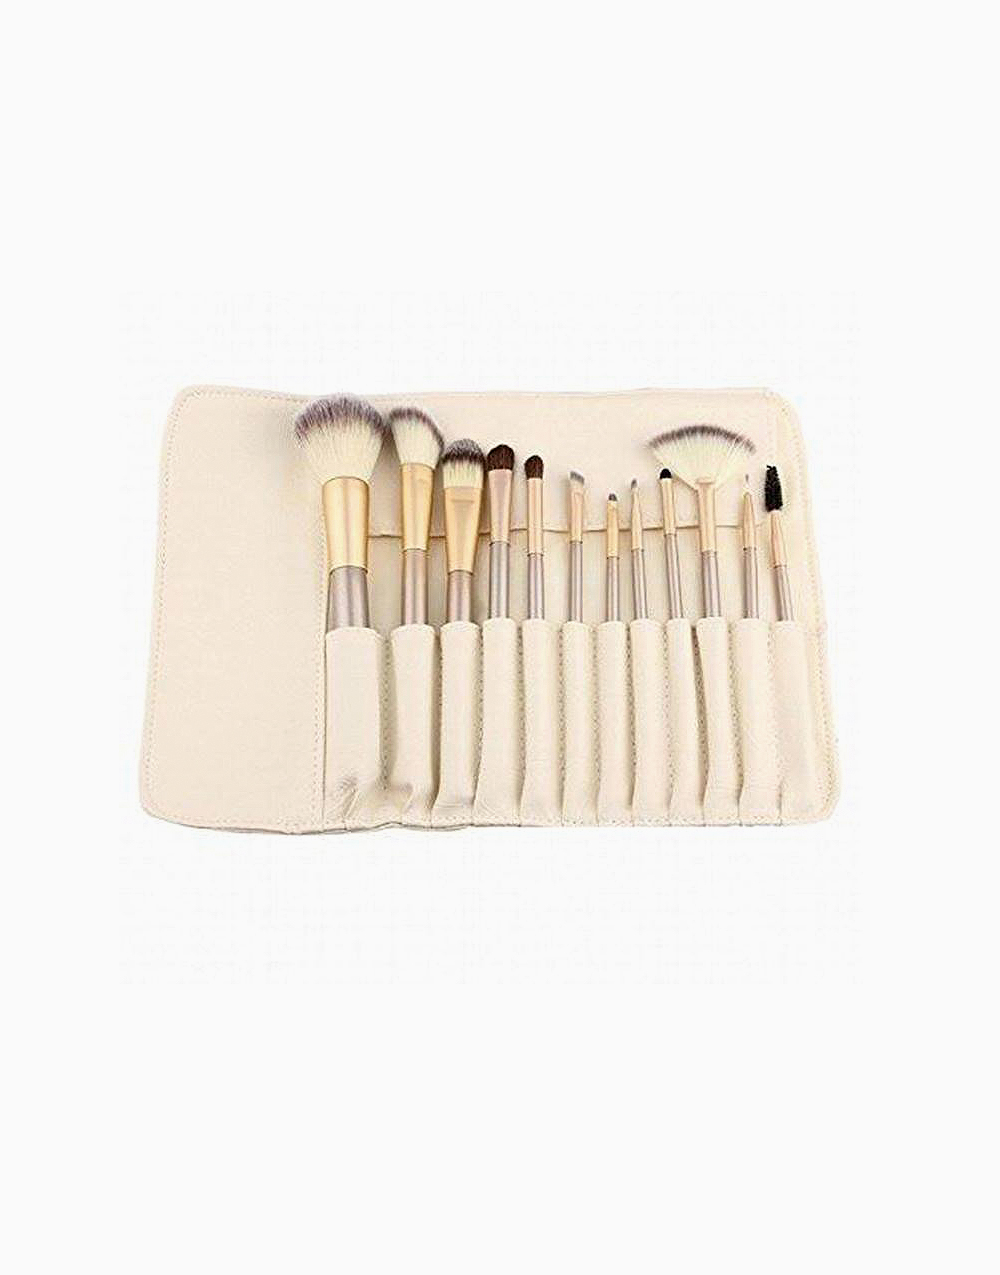 12-Piece Makeup Brush Set with Cream Case by Brush Works